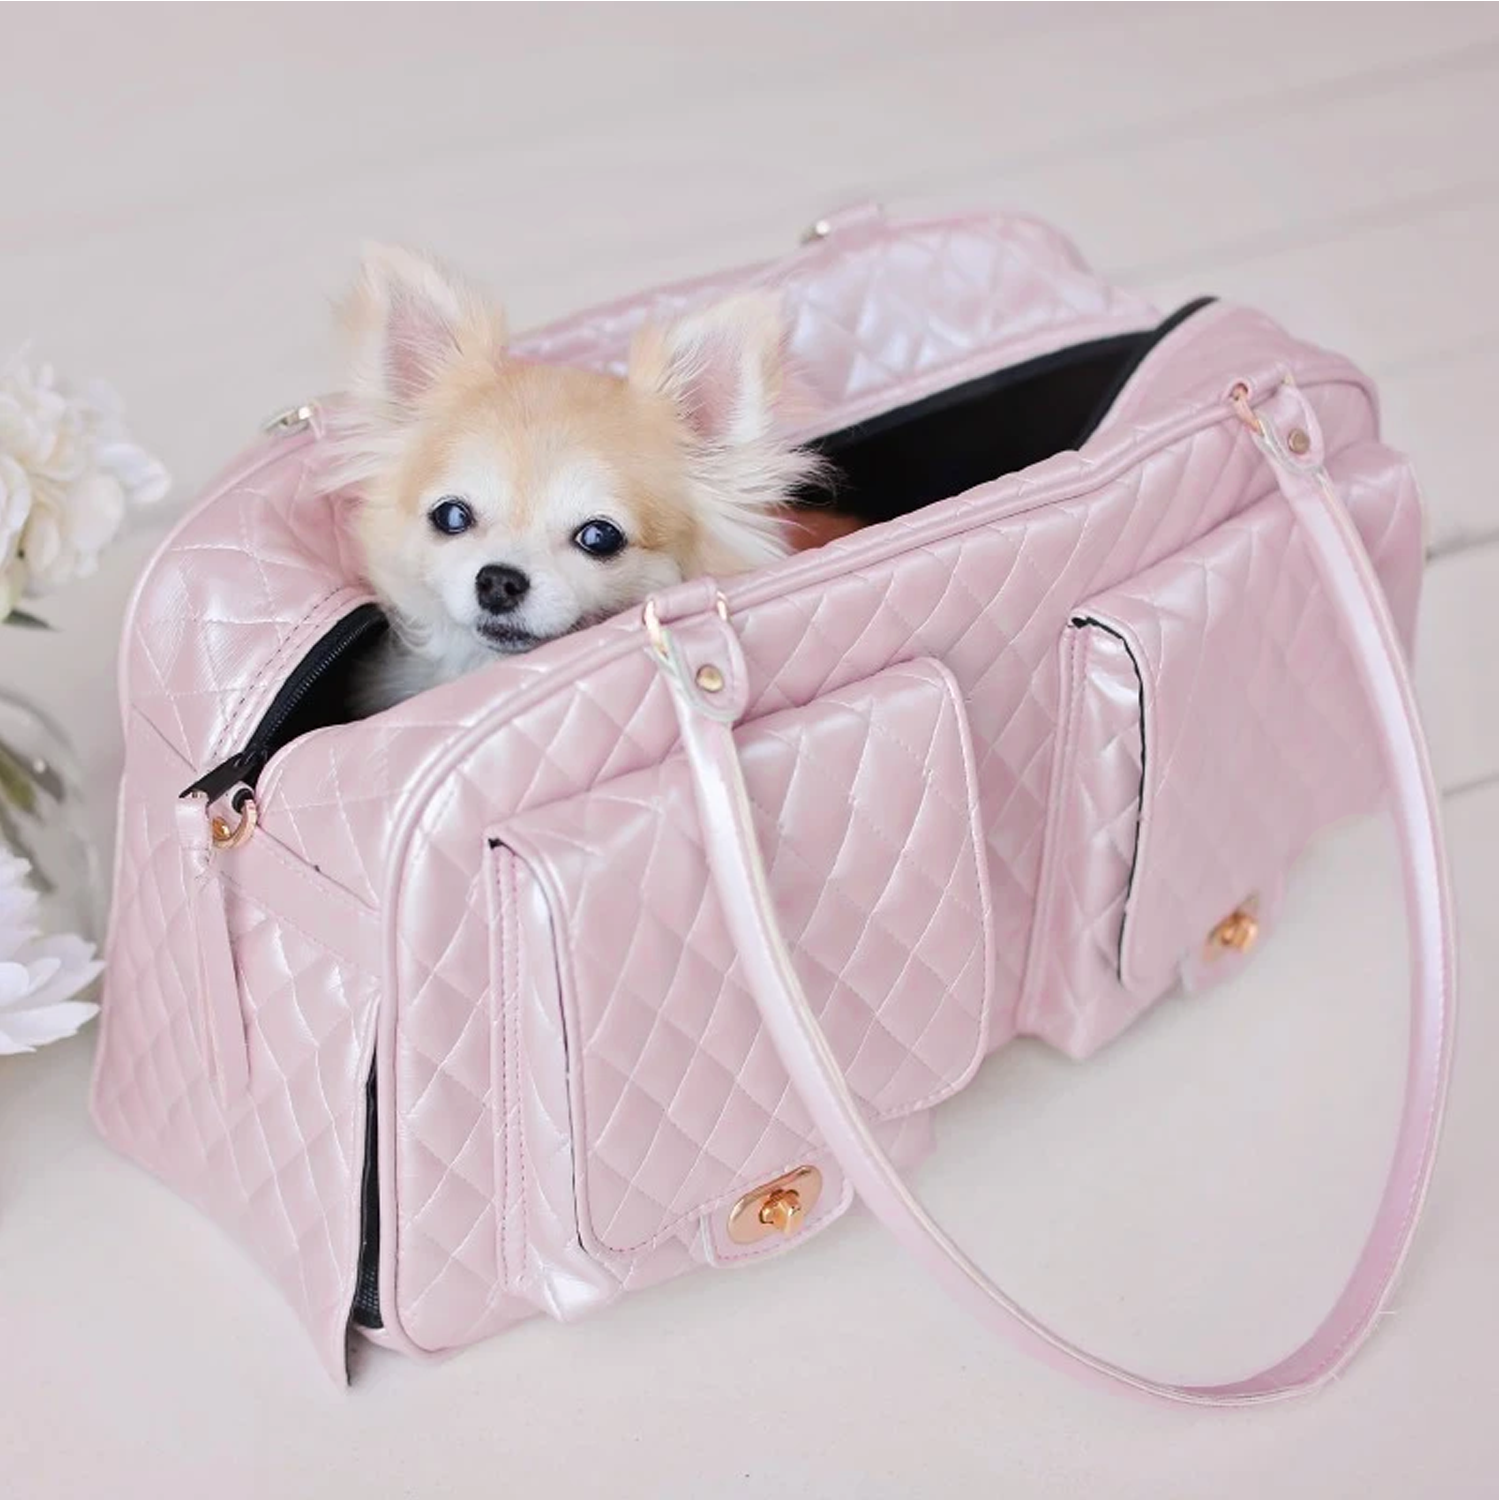 Quilted Marlee Dog Carrier: Pink